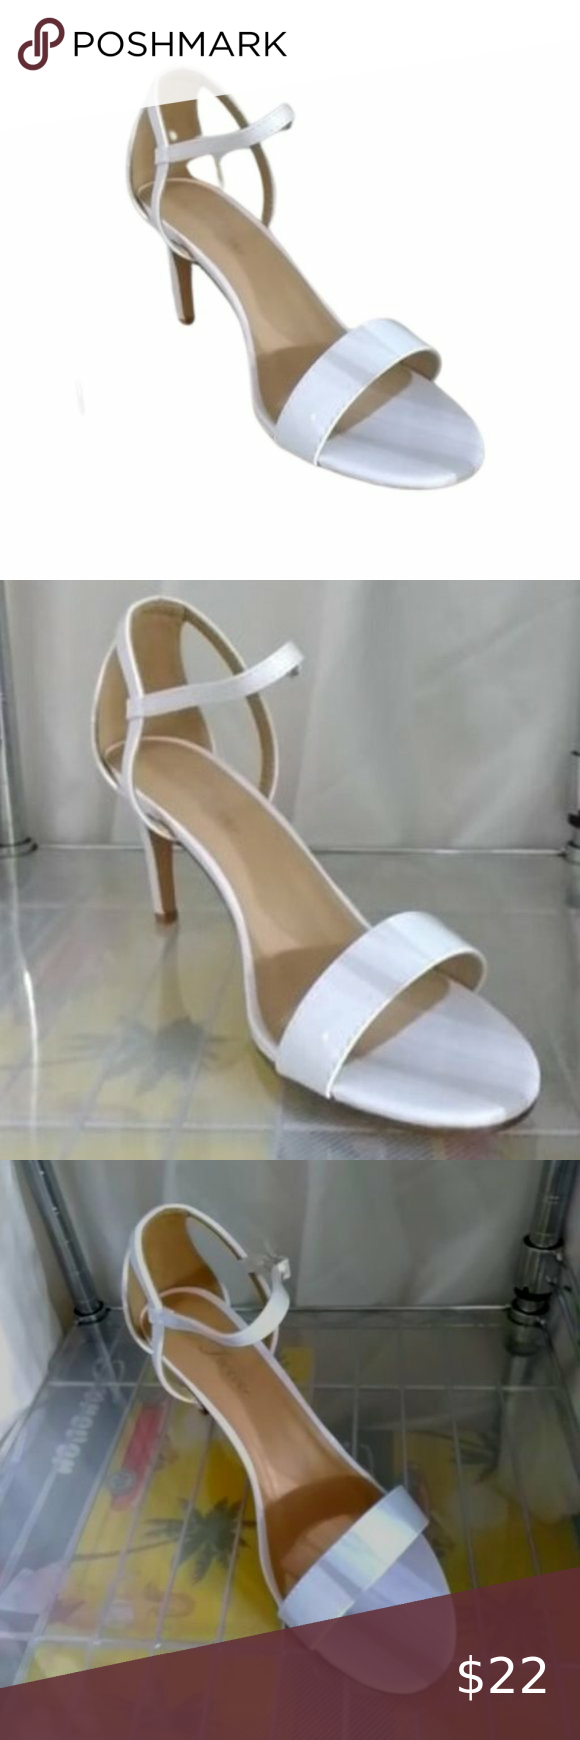 Bogo Free White Faux Leather Kitten Heel Boutique Item New In Boxes White Faux Patent Leather Upper Adjusta In 2020 White Faux Leather Forever Link Shoes Kitten Heels